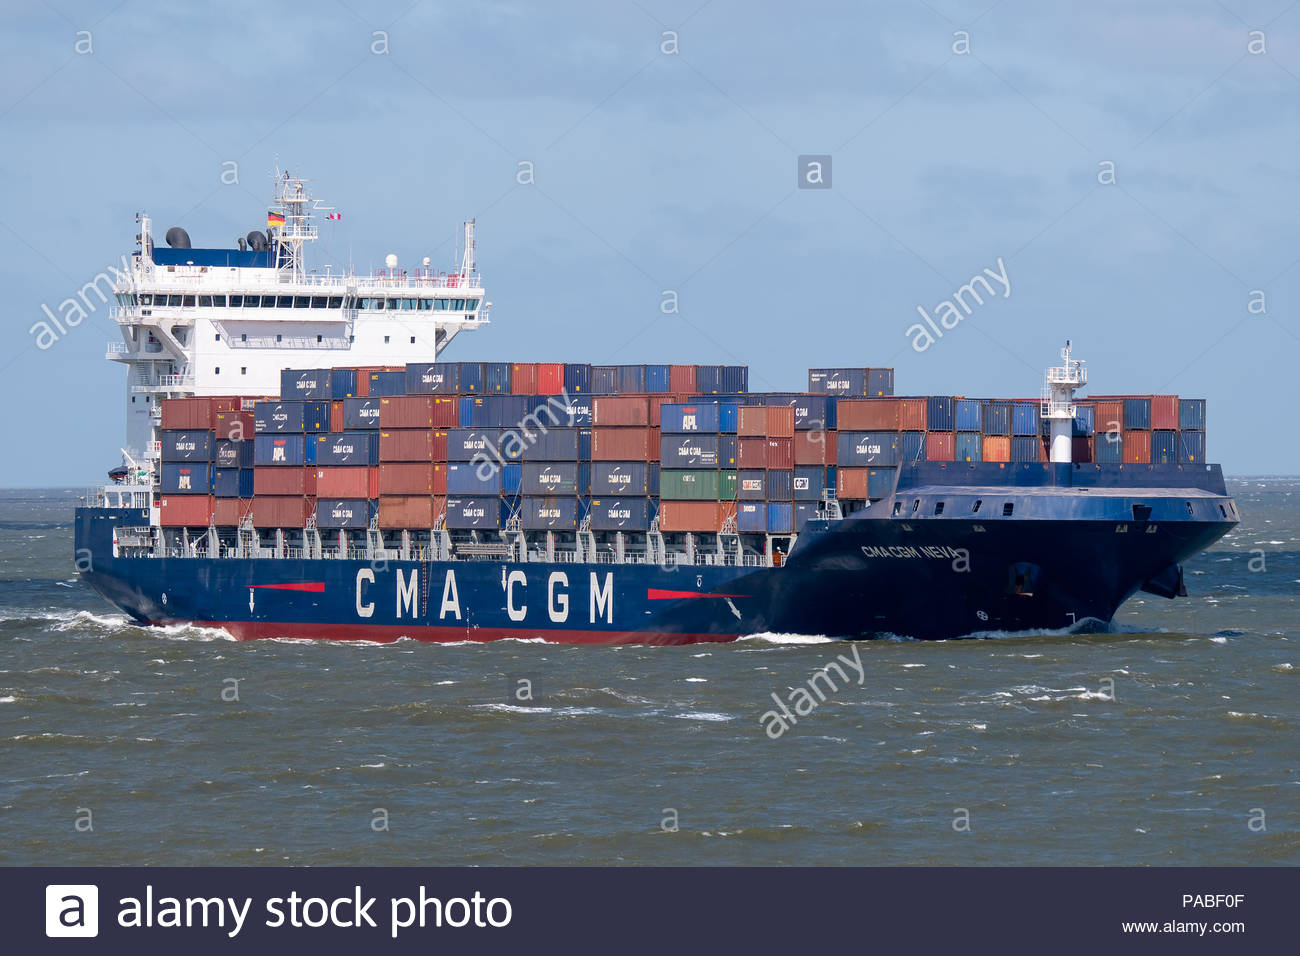 The container ship CMA CGM NEVA on the way to the port of Hamburg - Stock Image